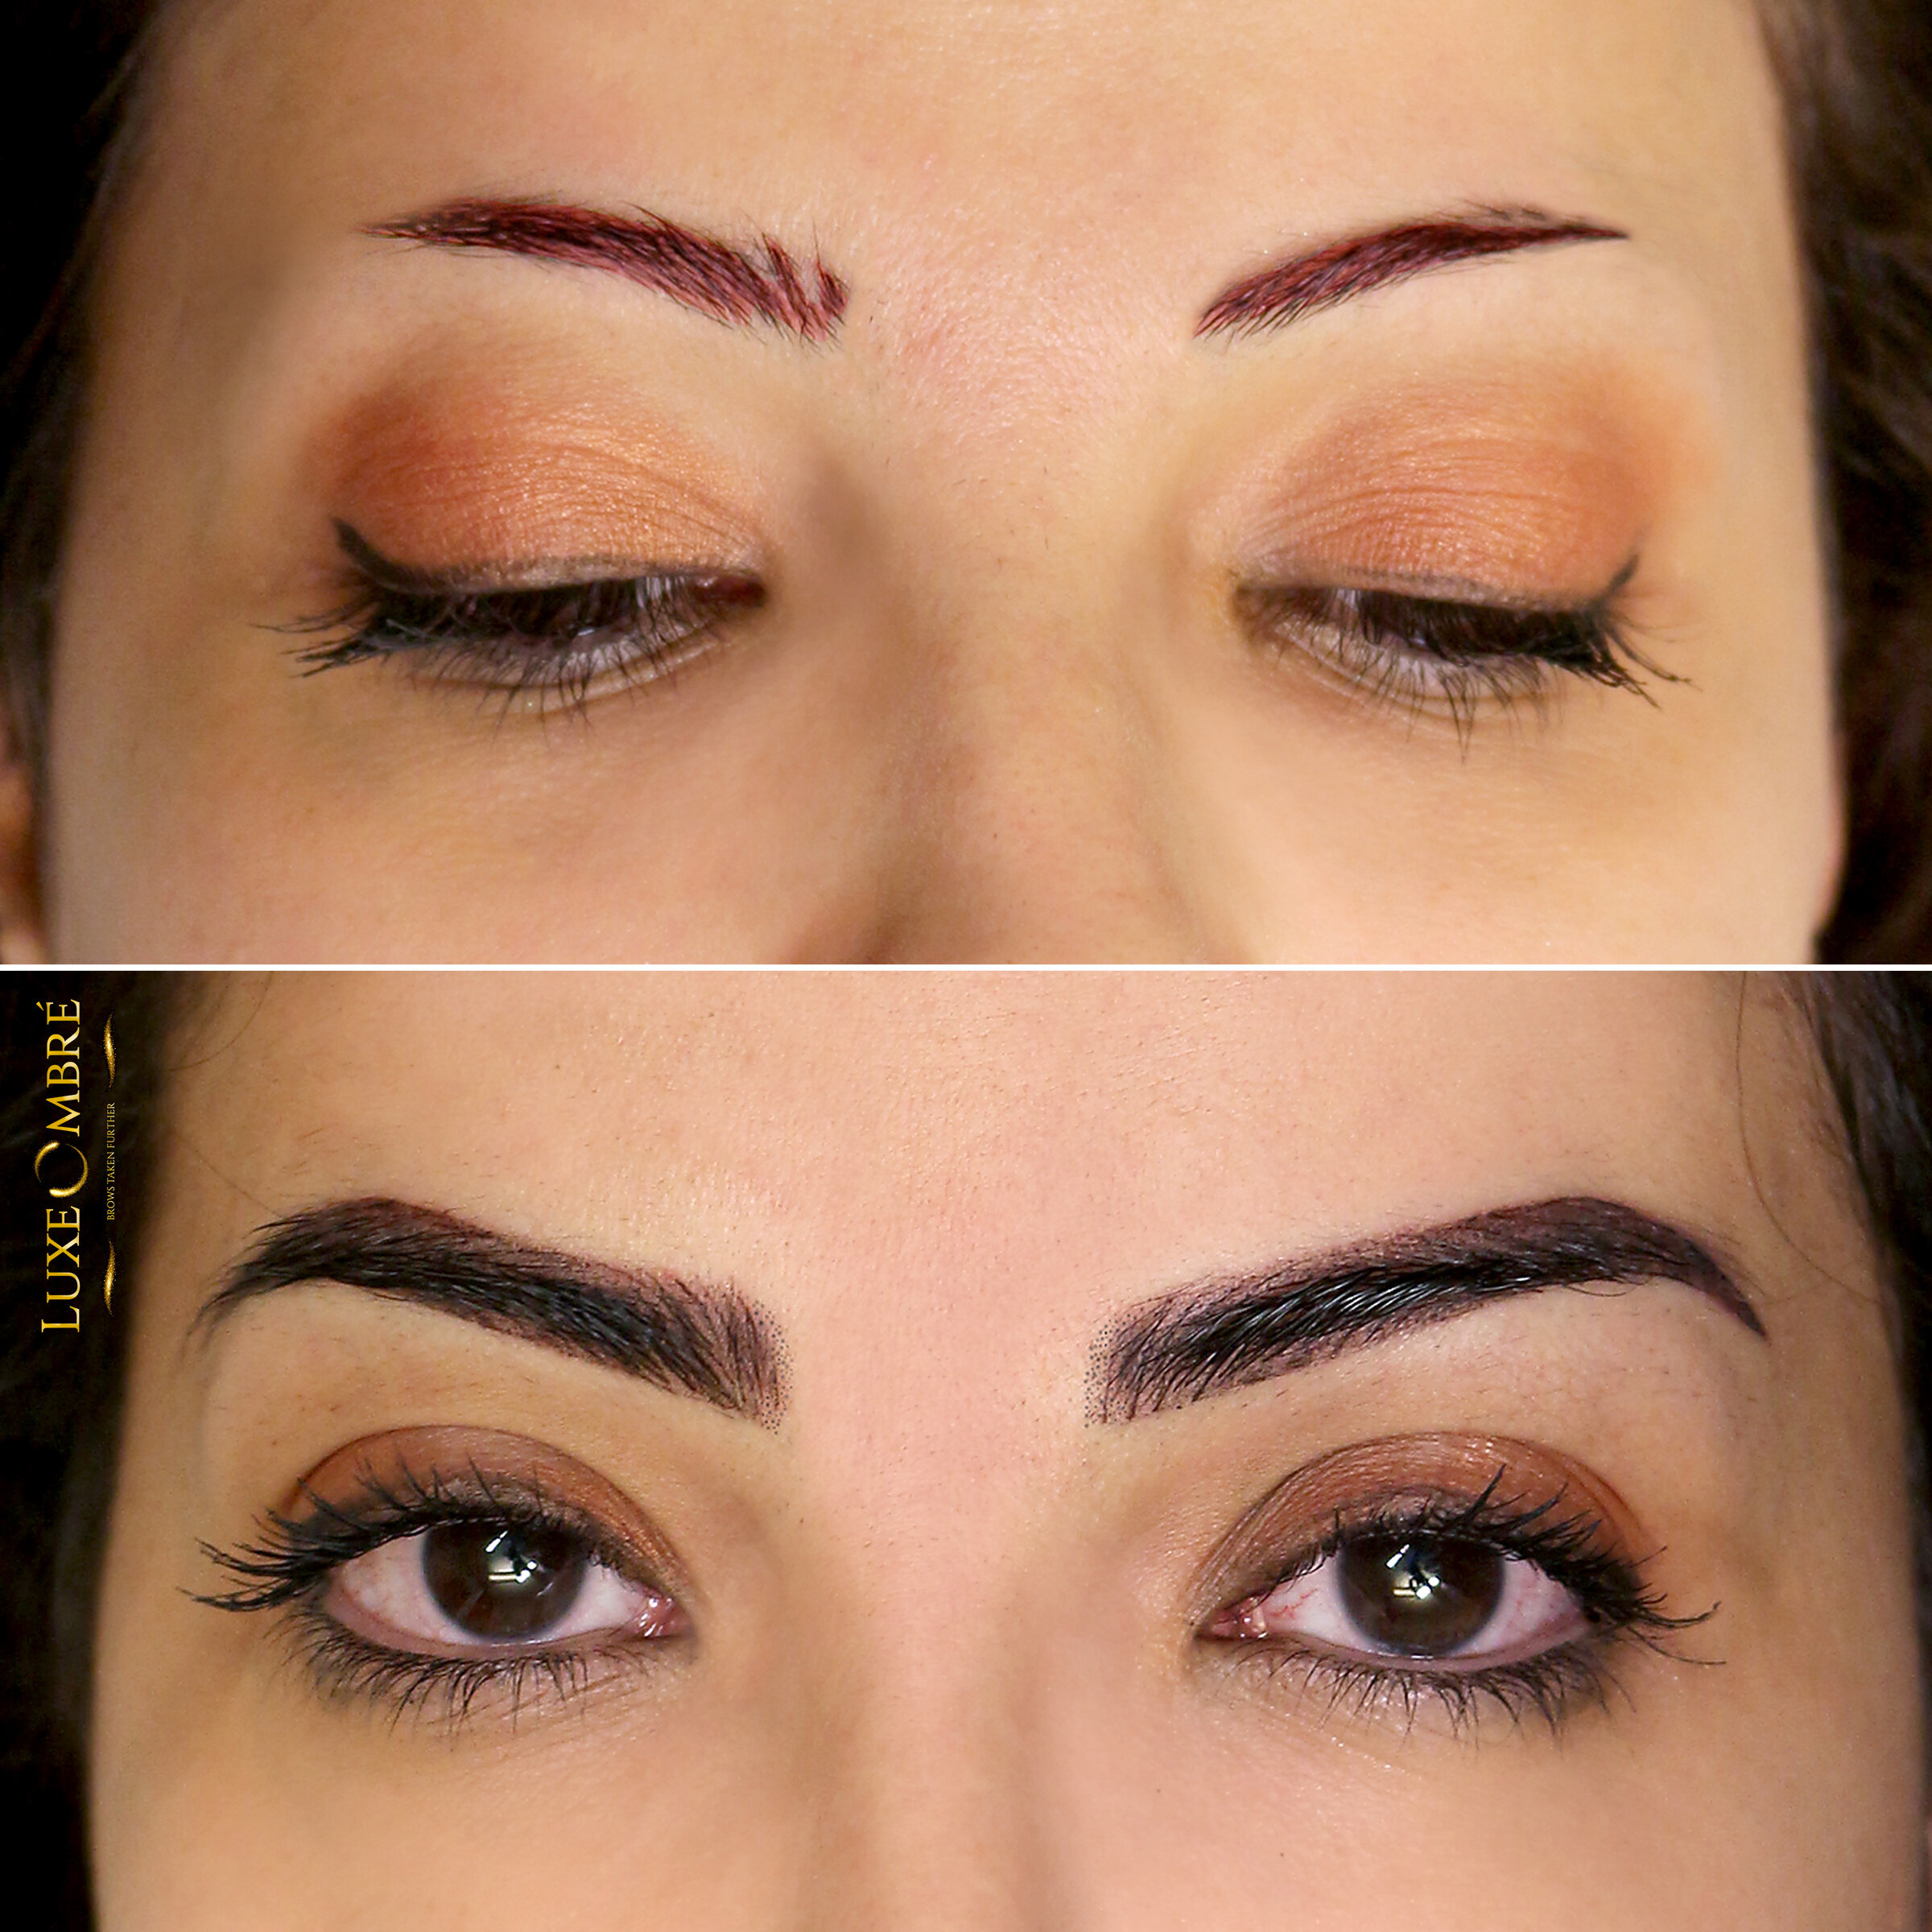 Small brows turned into beautiful with LuxeOmbre.